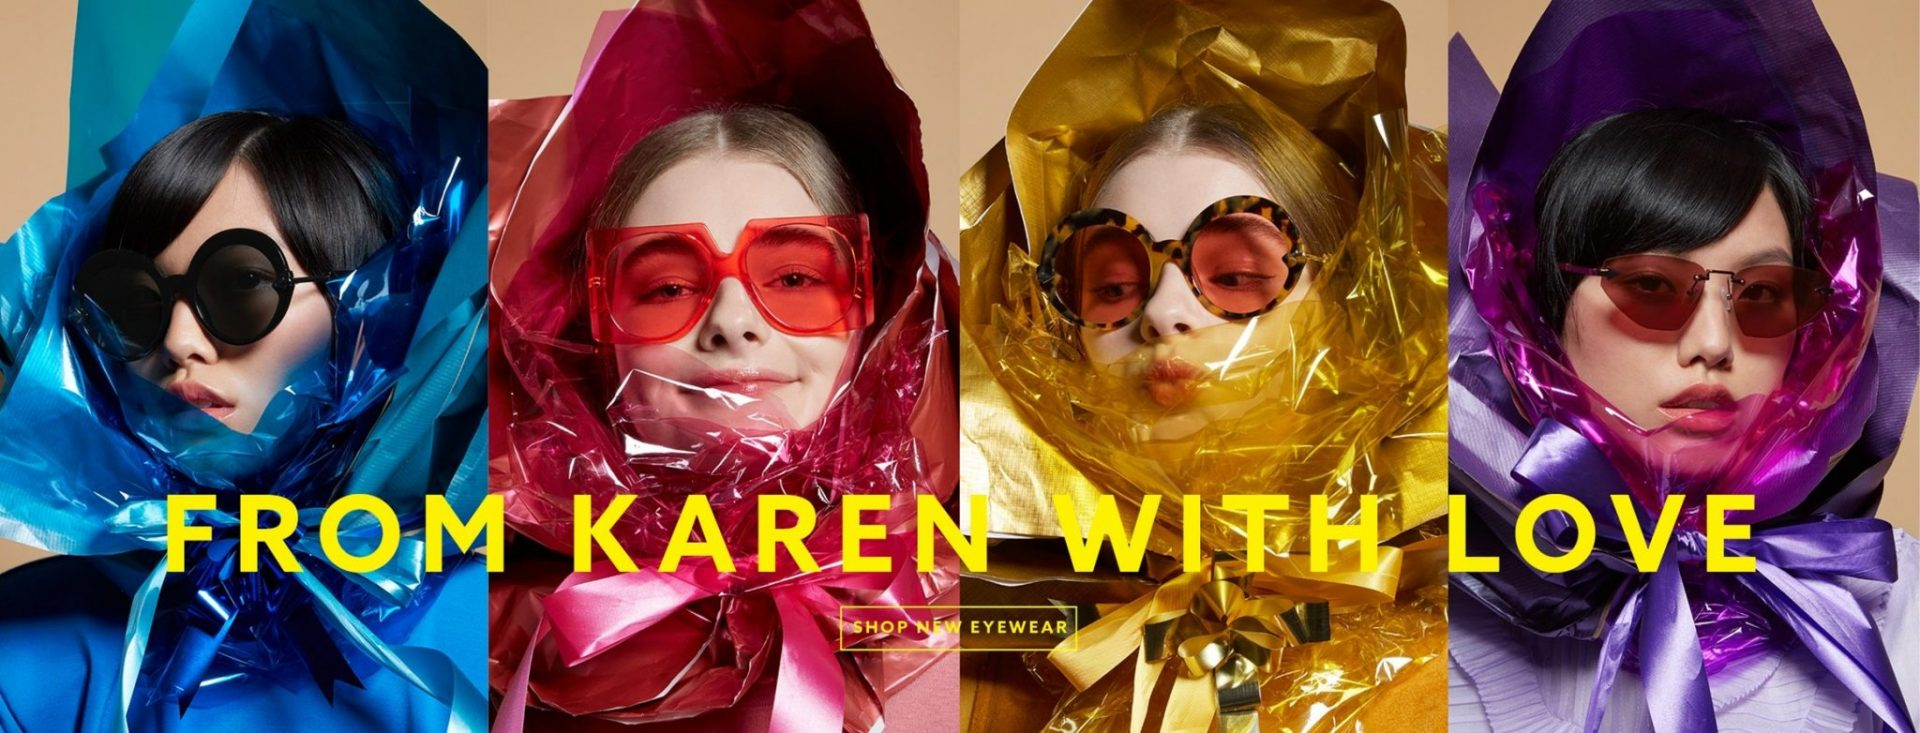 SWEET CAT AUBERGINE karen walker sunglasses latest collection sunglasses eyewear karen walker